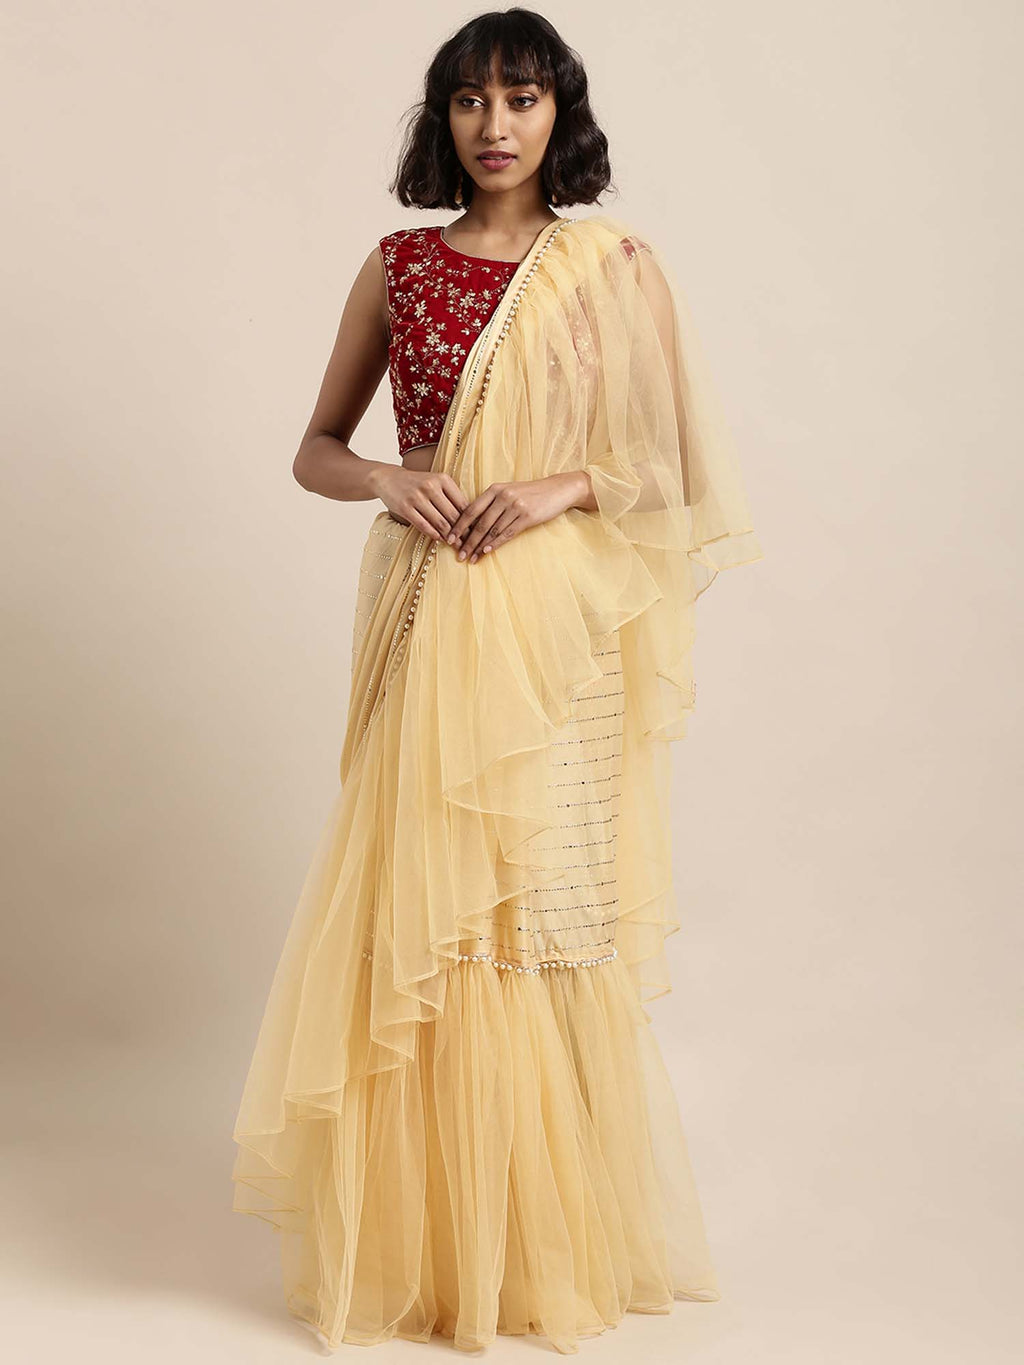 Beige Satin & Net Mukaish Embellished Ready To Wear Saree With Unstitched Blouse - Riviera Closet